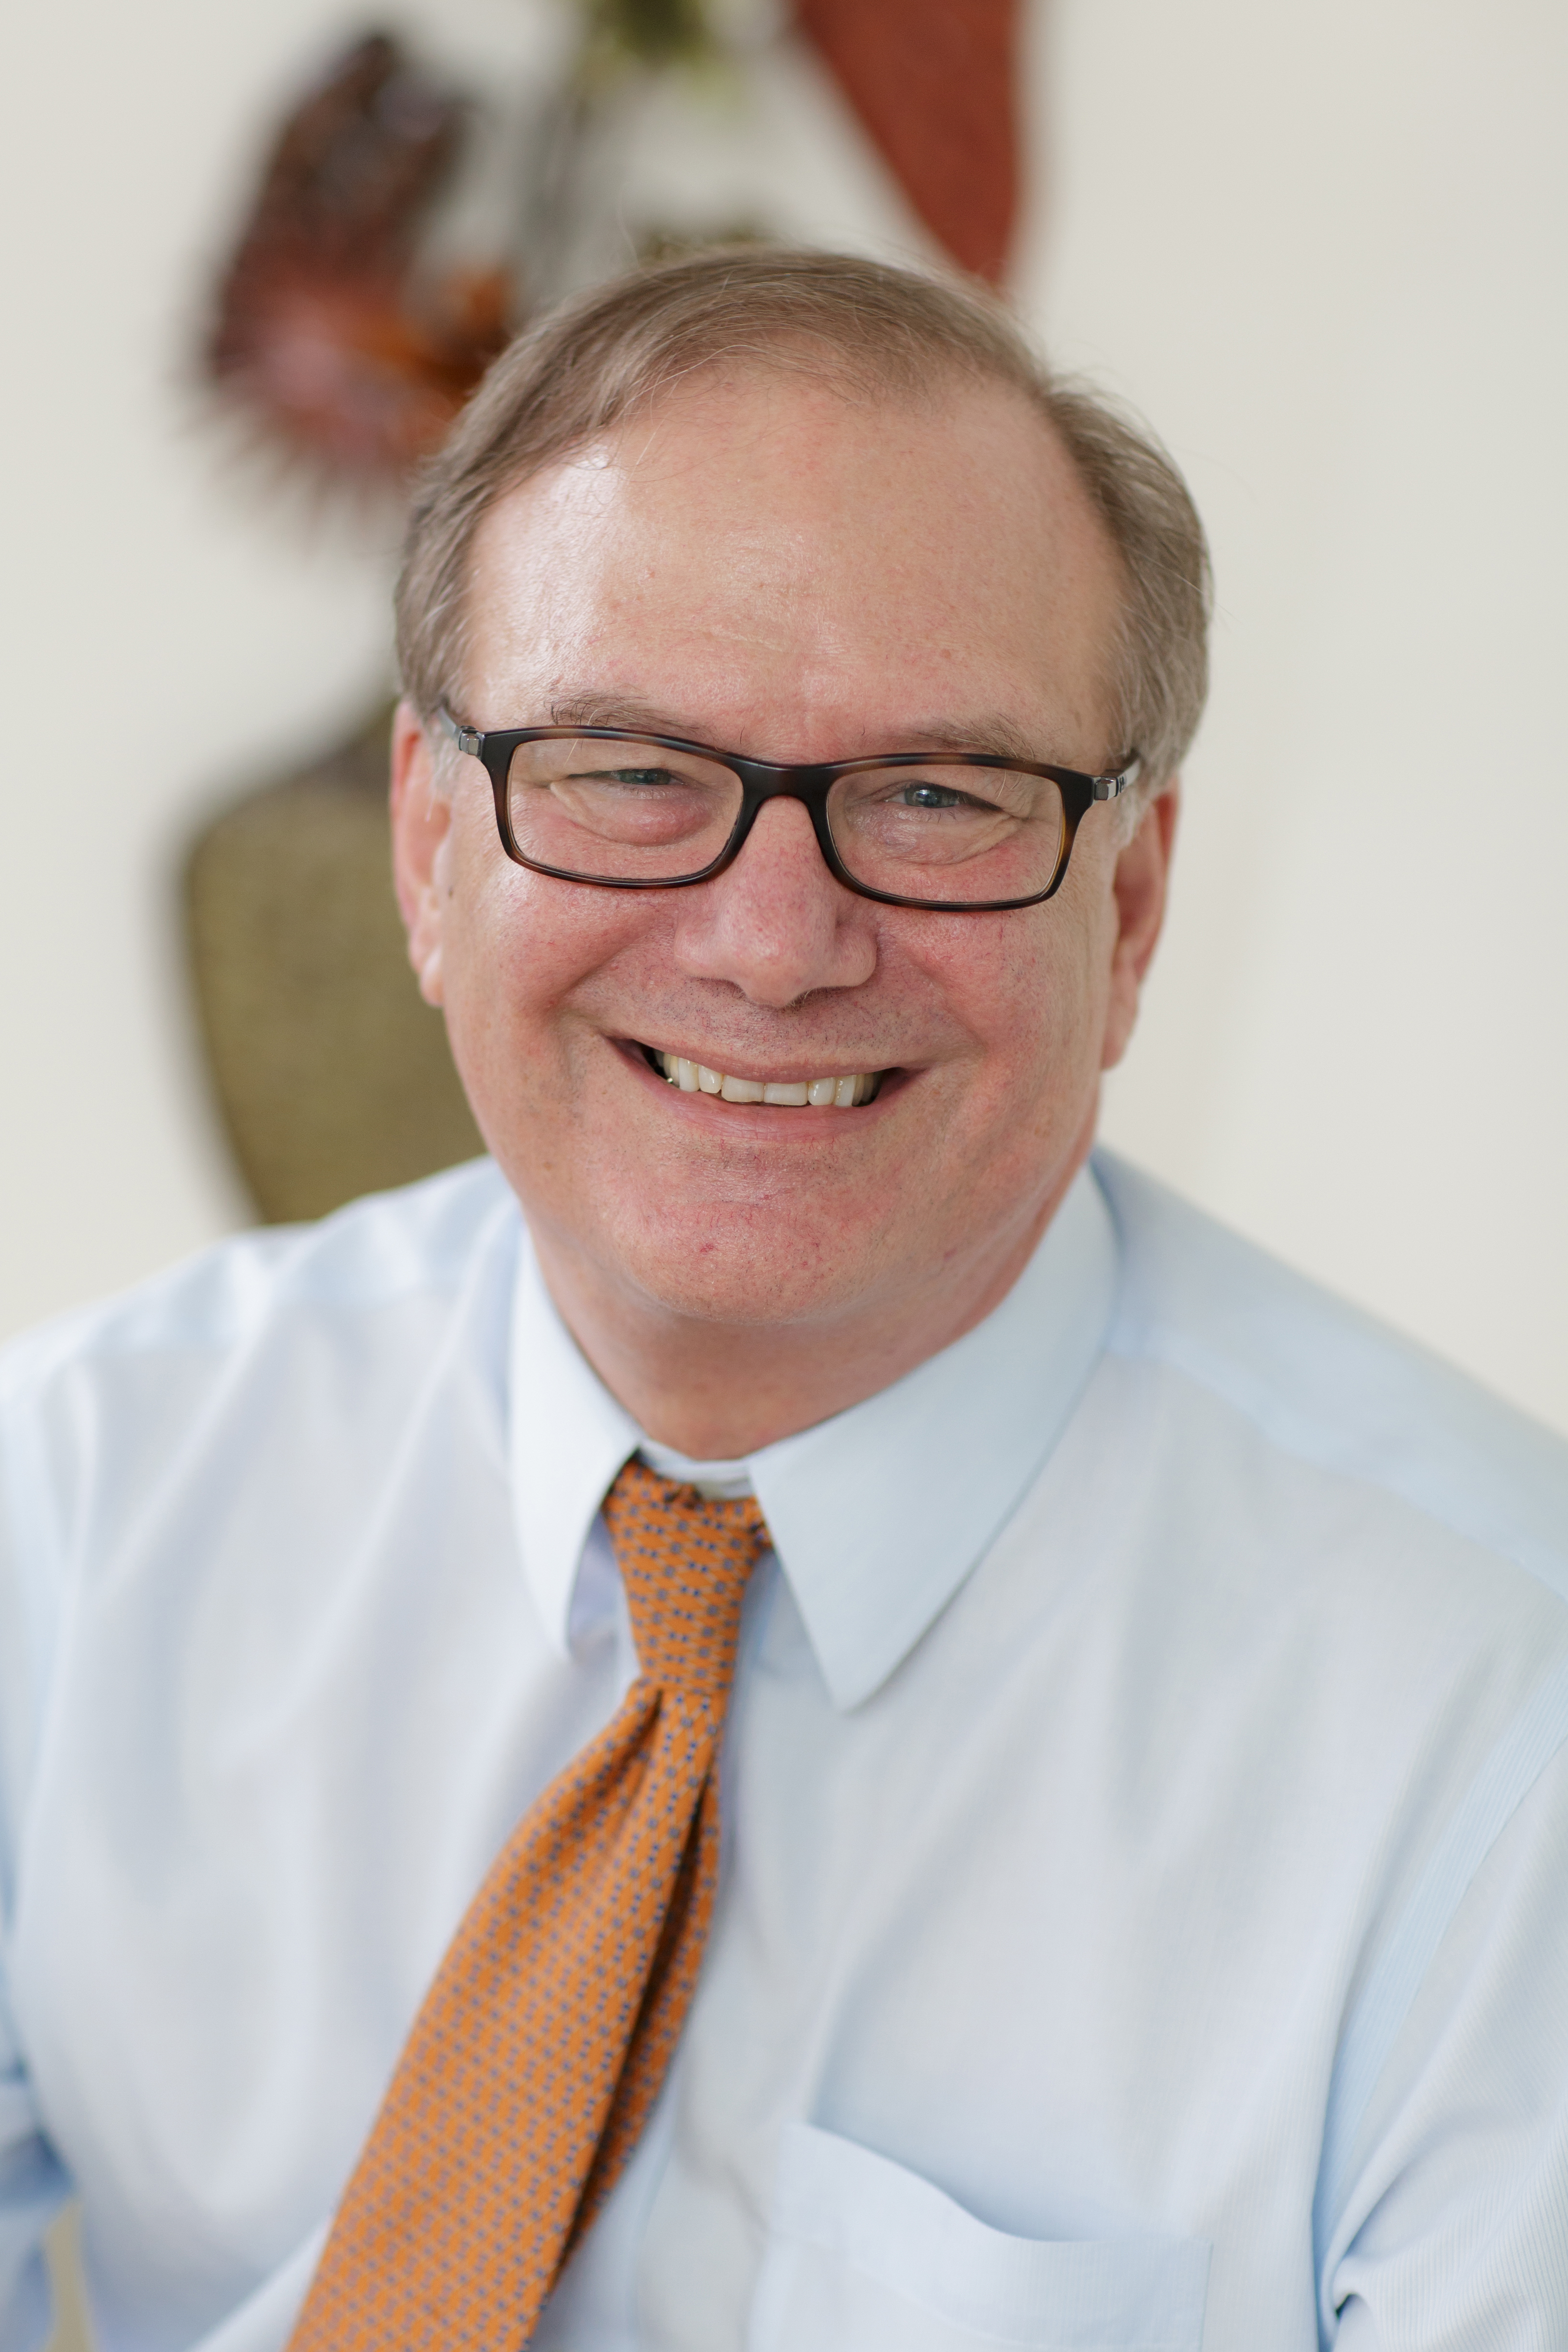 Steven T. DeKosky, M.D., has been named interim executive director of the Evelyn F. and William L. McKnight Brain Institute of the University of Florida